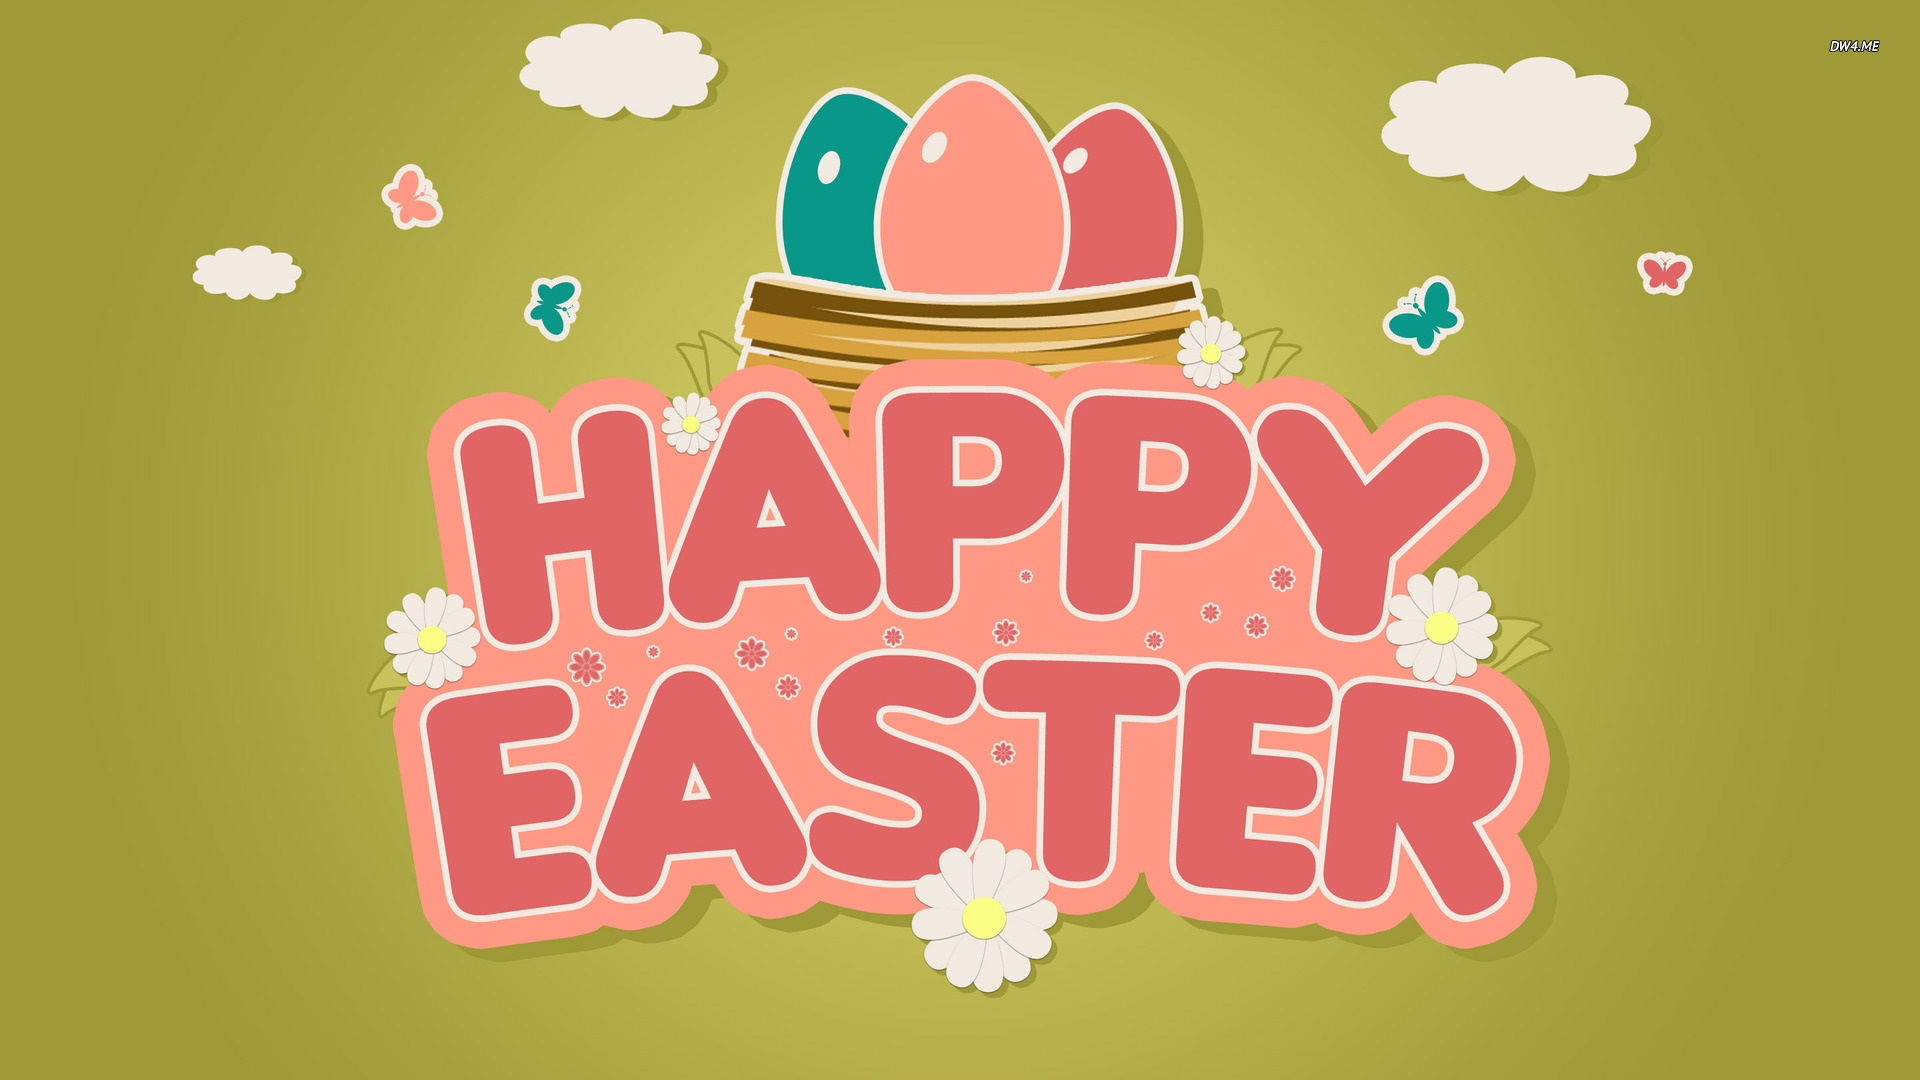 Happy easter greetings messages and religious easter wishes 2018 happy easter greetings m4hsunfo